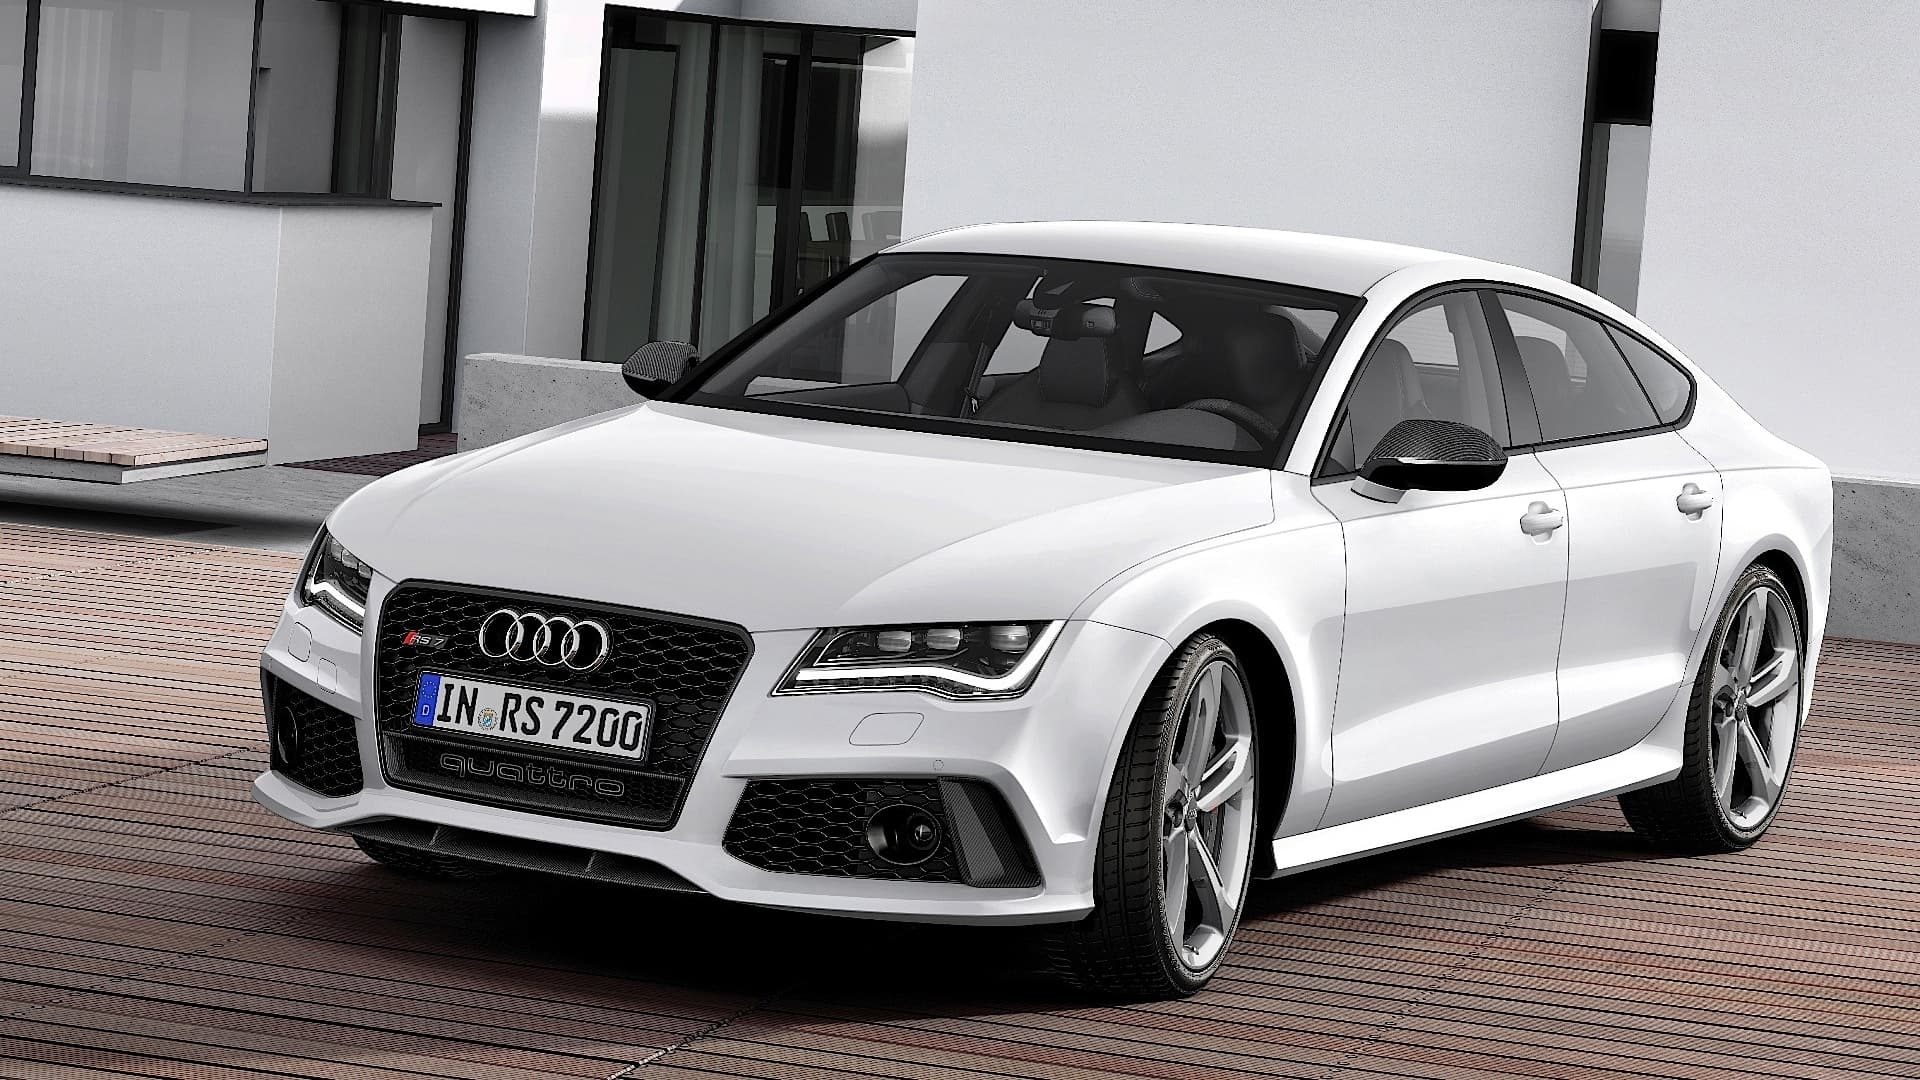 2016 audi rs7 wallpapers hd high quality resolution download. Black Bedroom Furniture Sets. Home Design Ideas